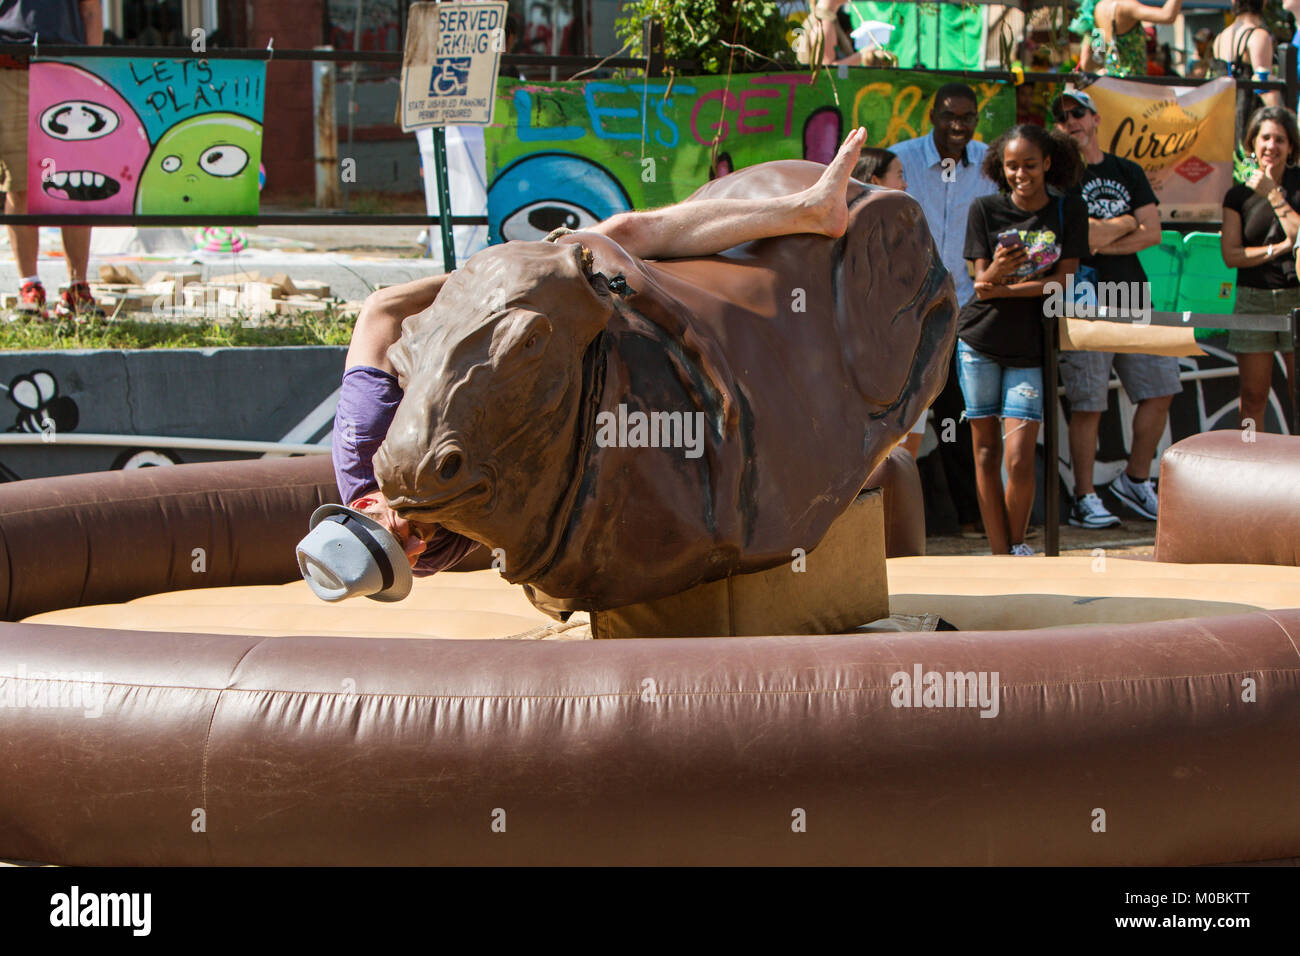 Atlanta, GA, USA - September 23, 2017:  A young man desperately tries to stay on a mechanical bull as he starts - Stock Image